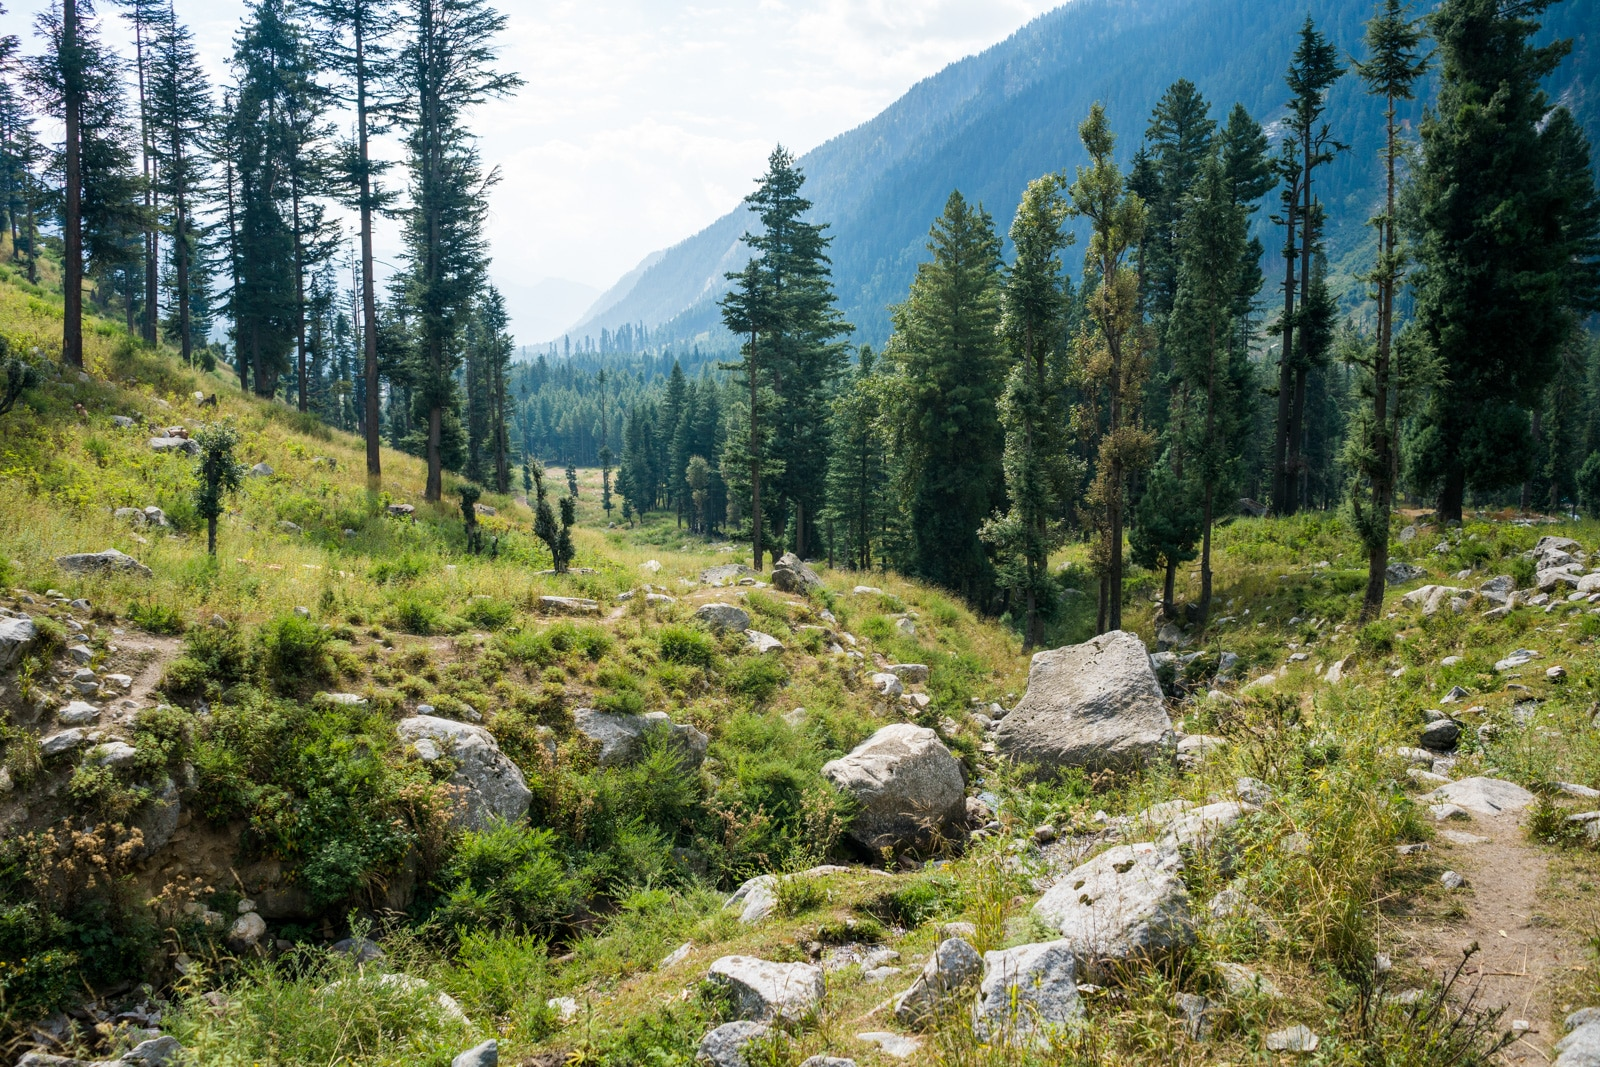 Deodar trees in Kumrat Valley in Pakistan